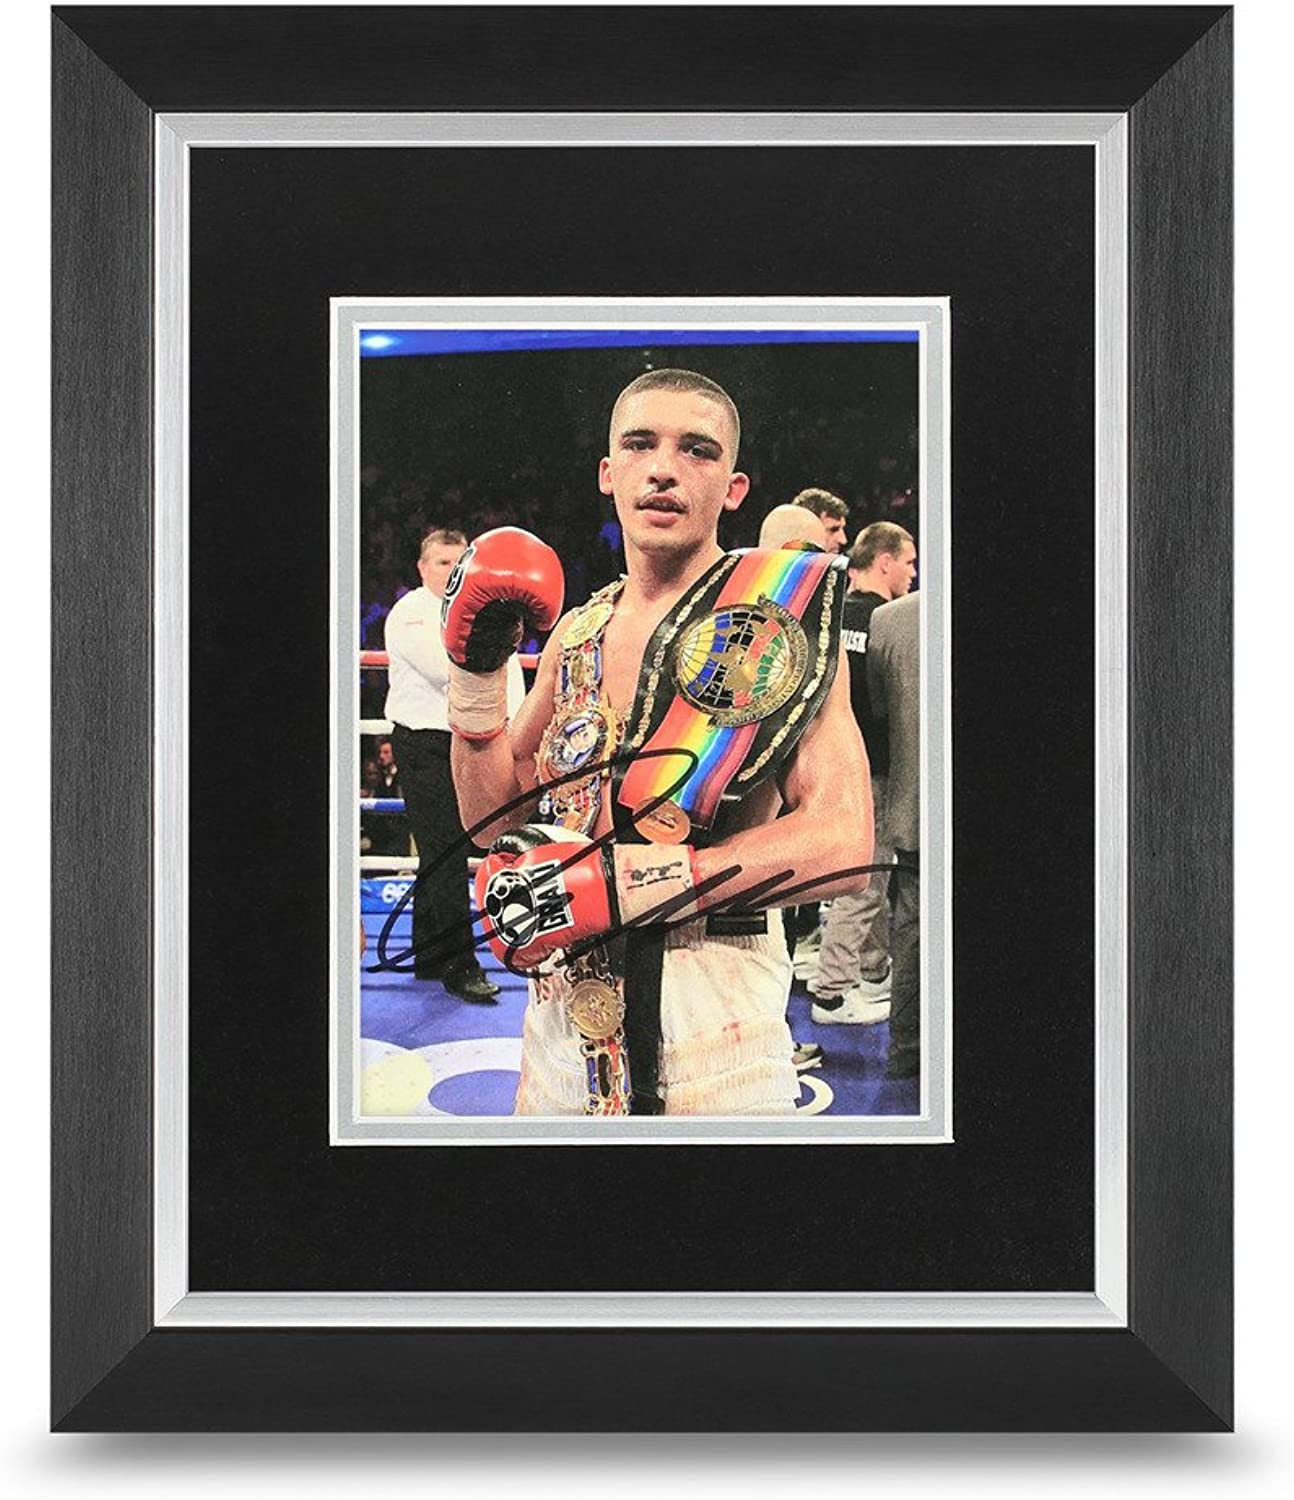 Lee Selby Signed 10x8 Photo Framed Boxing Champion Memorabilia Autograph + COA